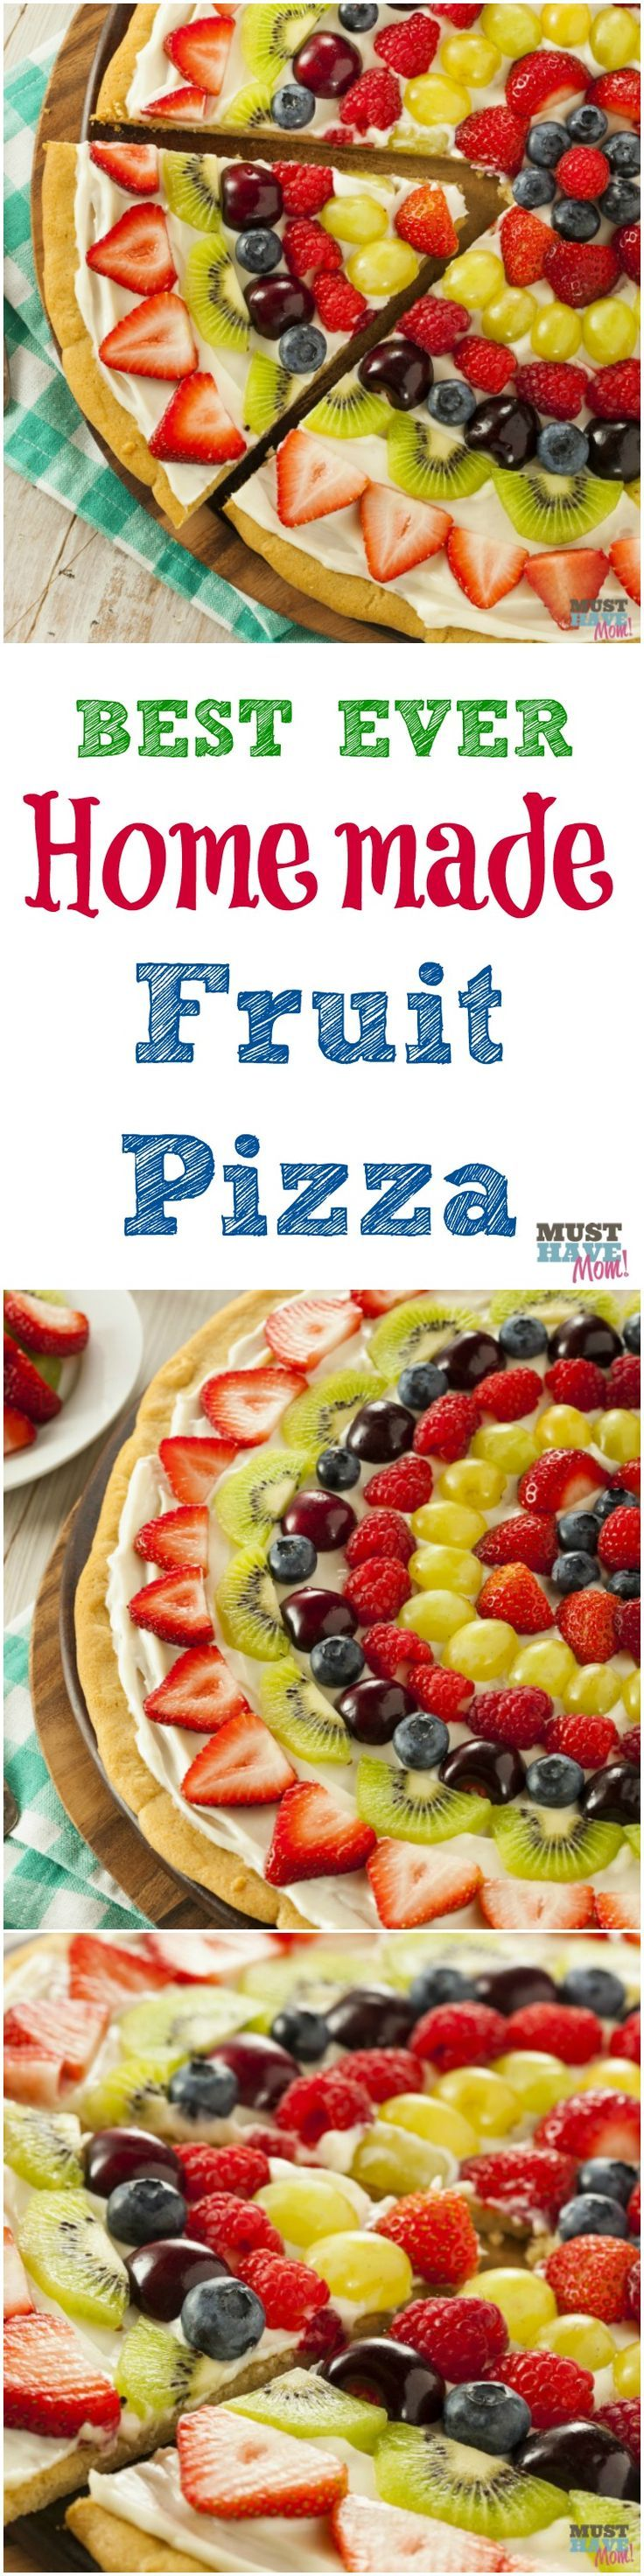 Best Ever Homemade Fruit Pizza Recipe. Make fruit pizza from scratch with this super easy recipe that tastes amazing and so much better than store bought sugar cookie dough! I can't believe how good t